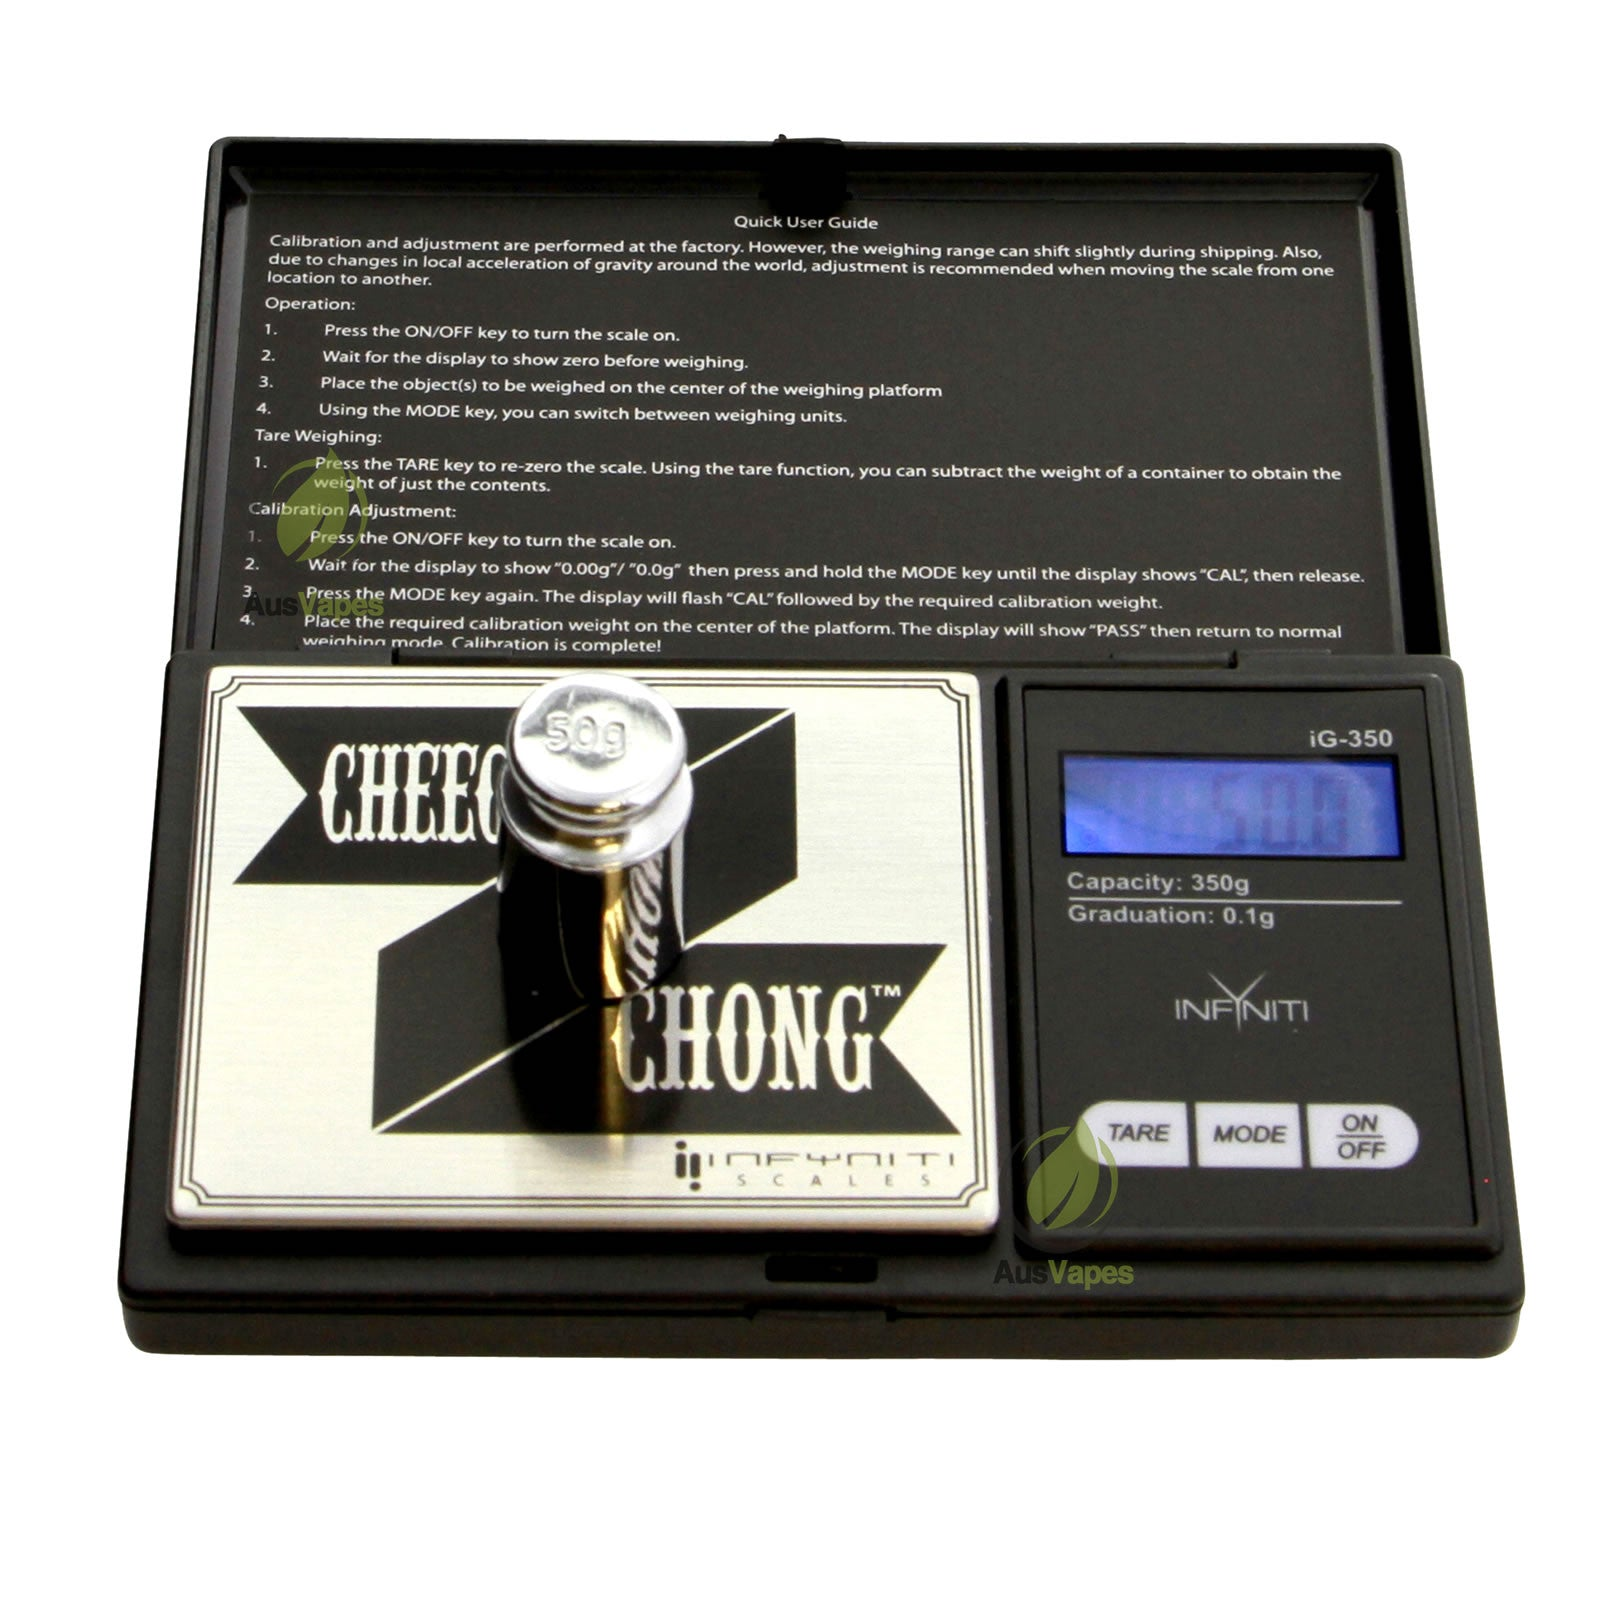 DISCONTINUED Infyniti CHCG-350 Cheech and Chong G-Force Digital Pocket Scale 350 x 0.1g